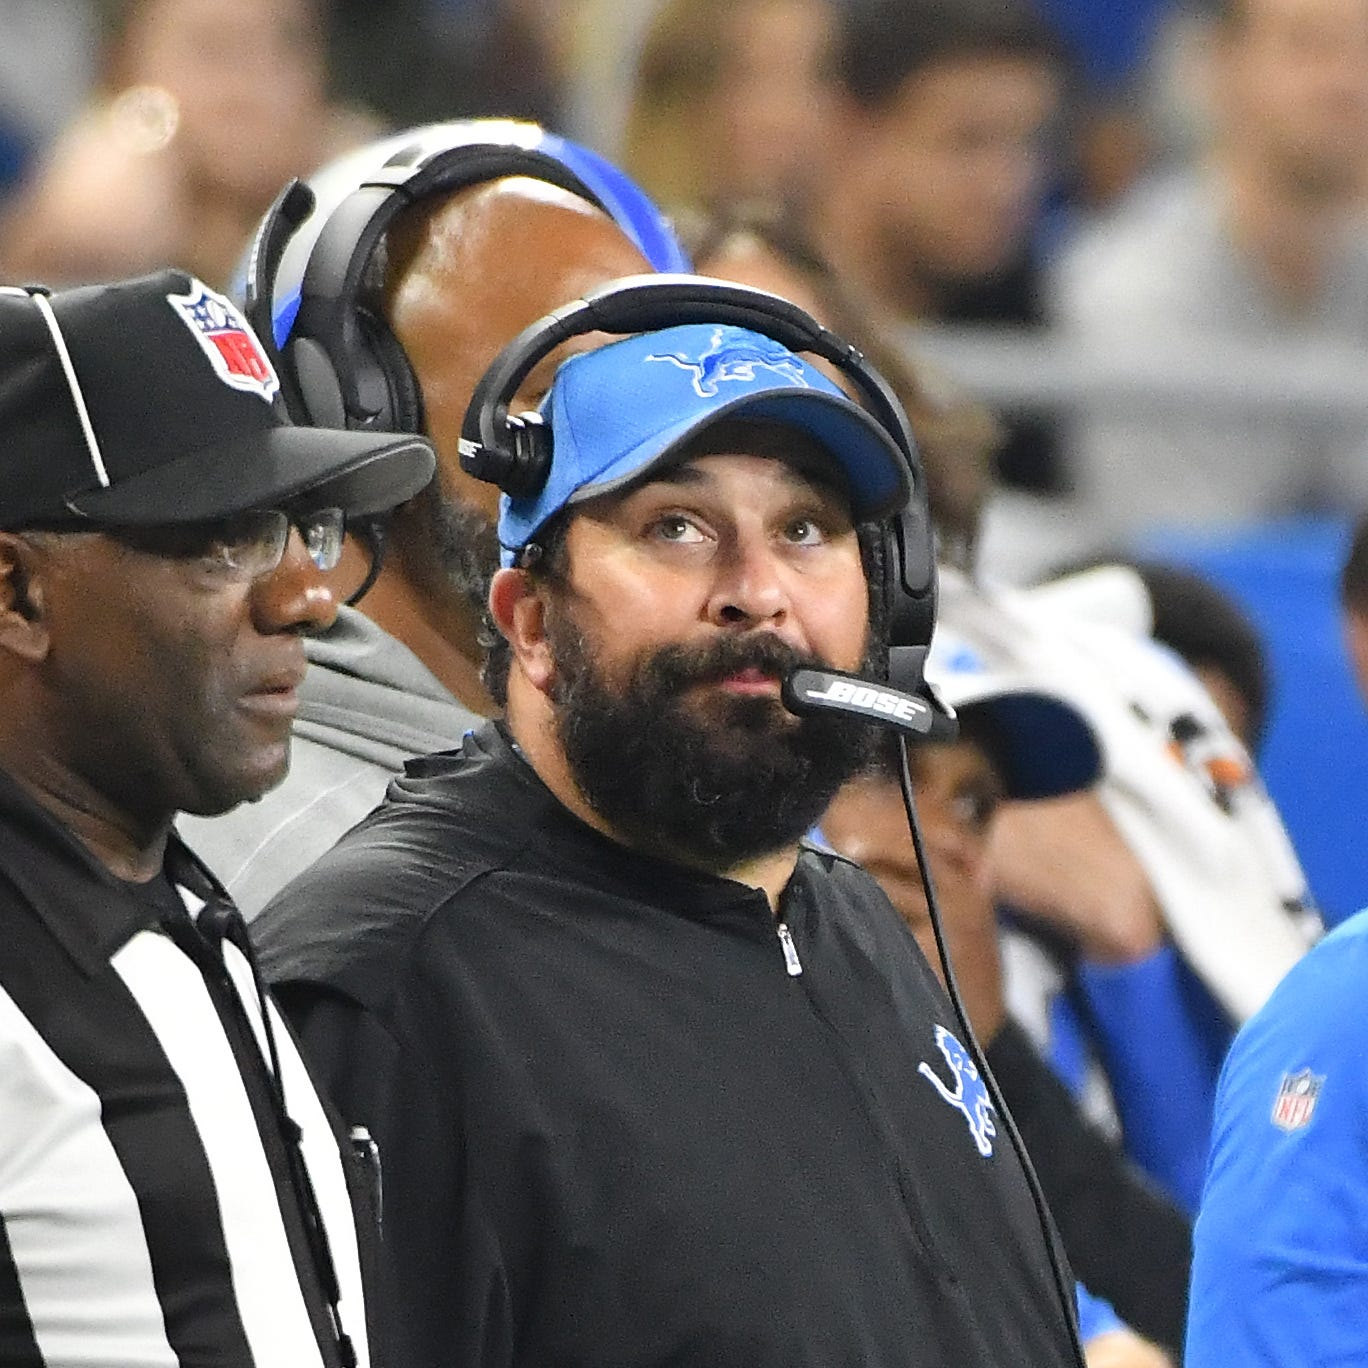 What does Lions coach Matt Patricia looks for in draft prospects? Here's a clue